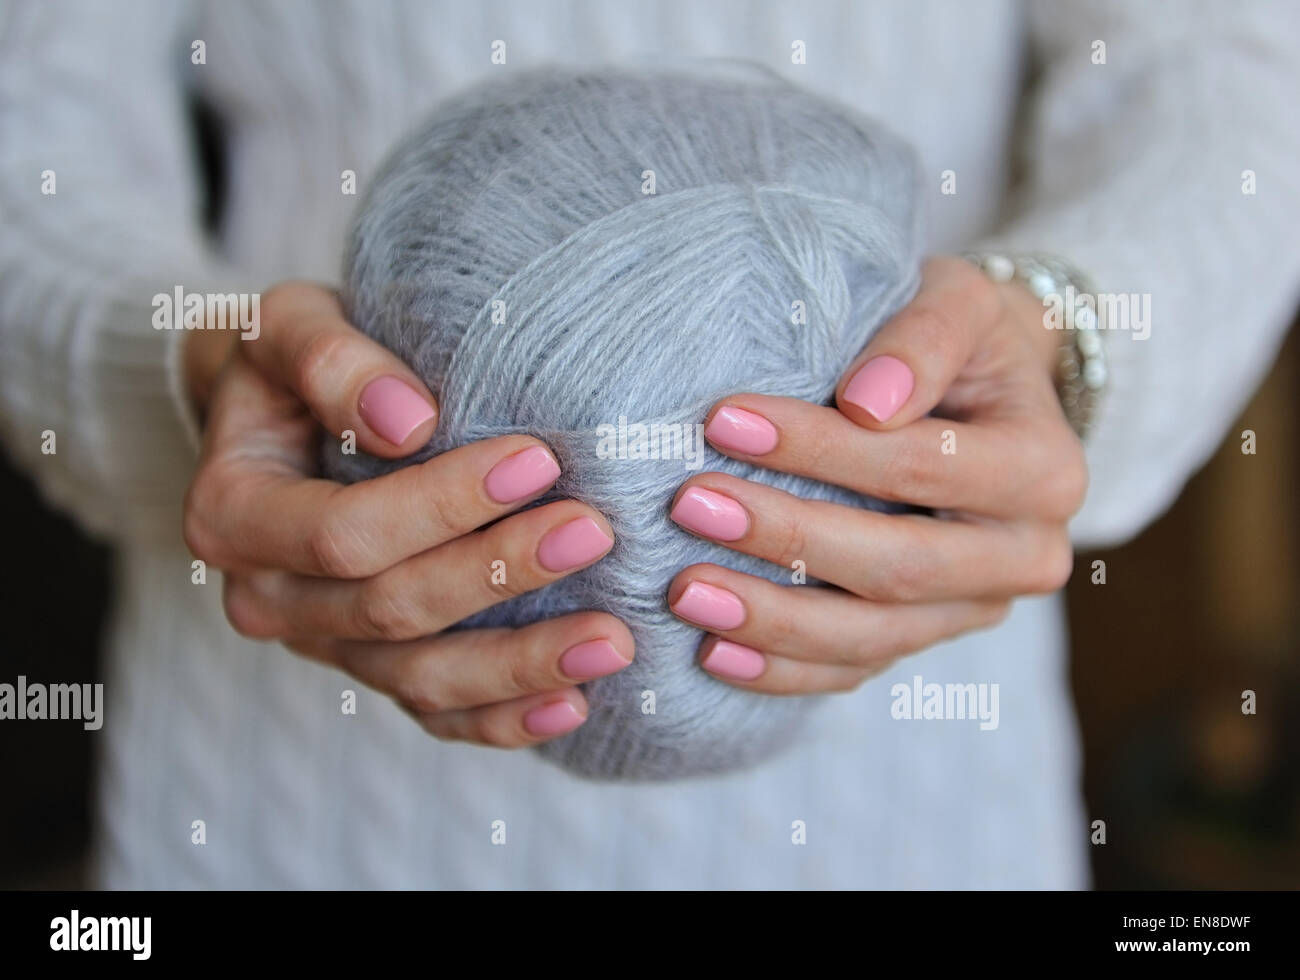 Skein of gray thread in female hands - Stock Image